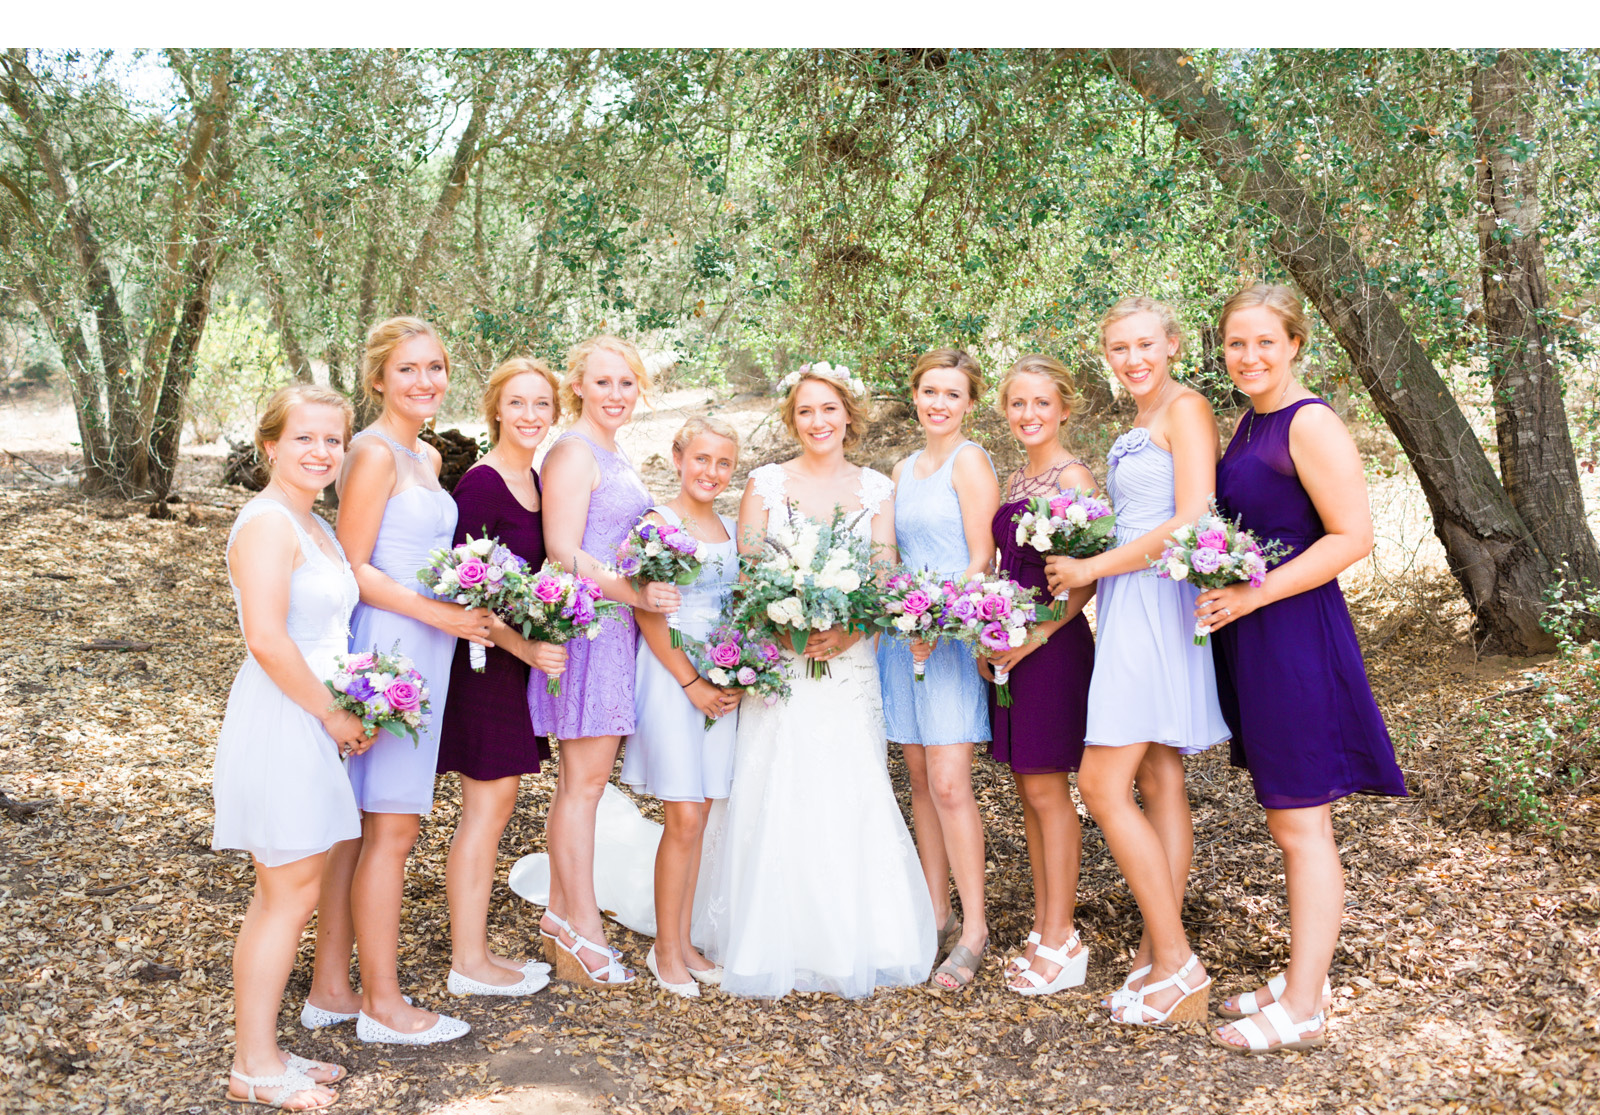 San-Diego-Ranch-Wedding---Natalie-Schutt-Photography_04.jpg